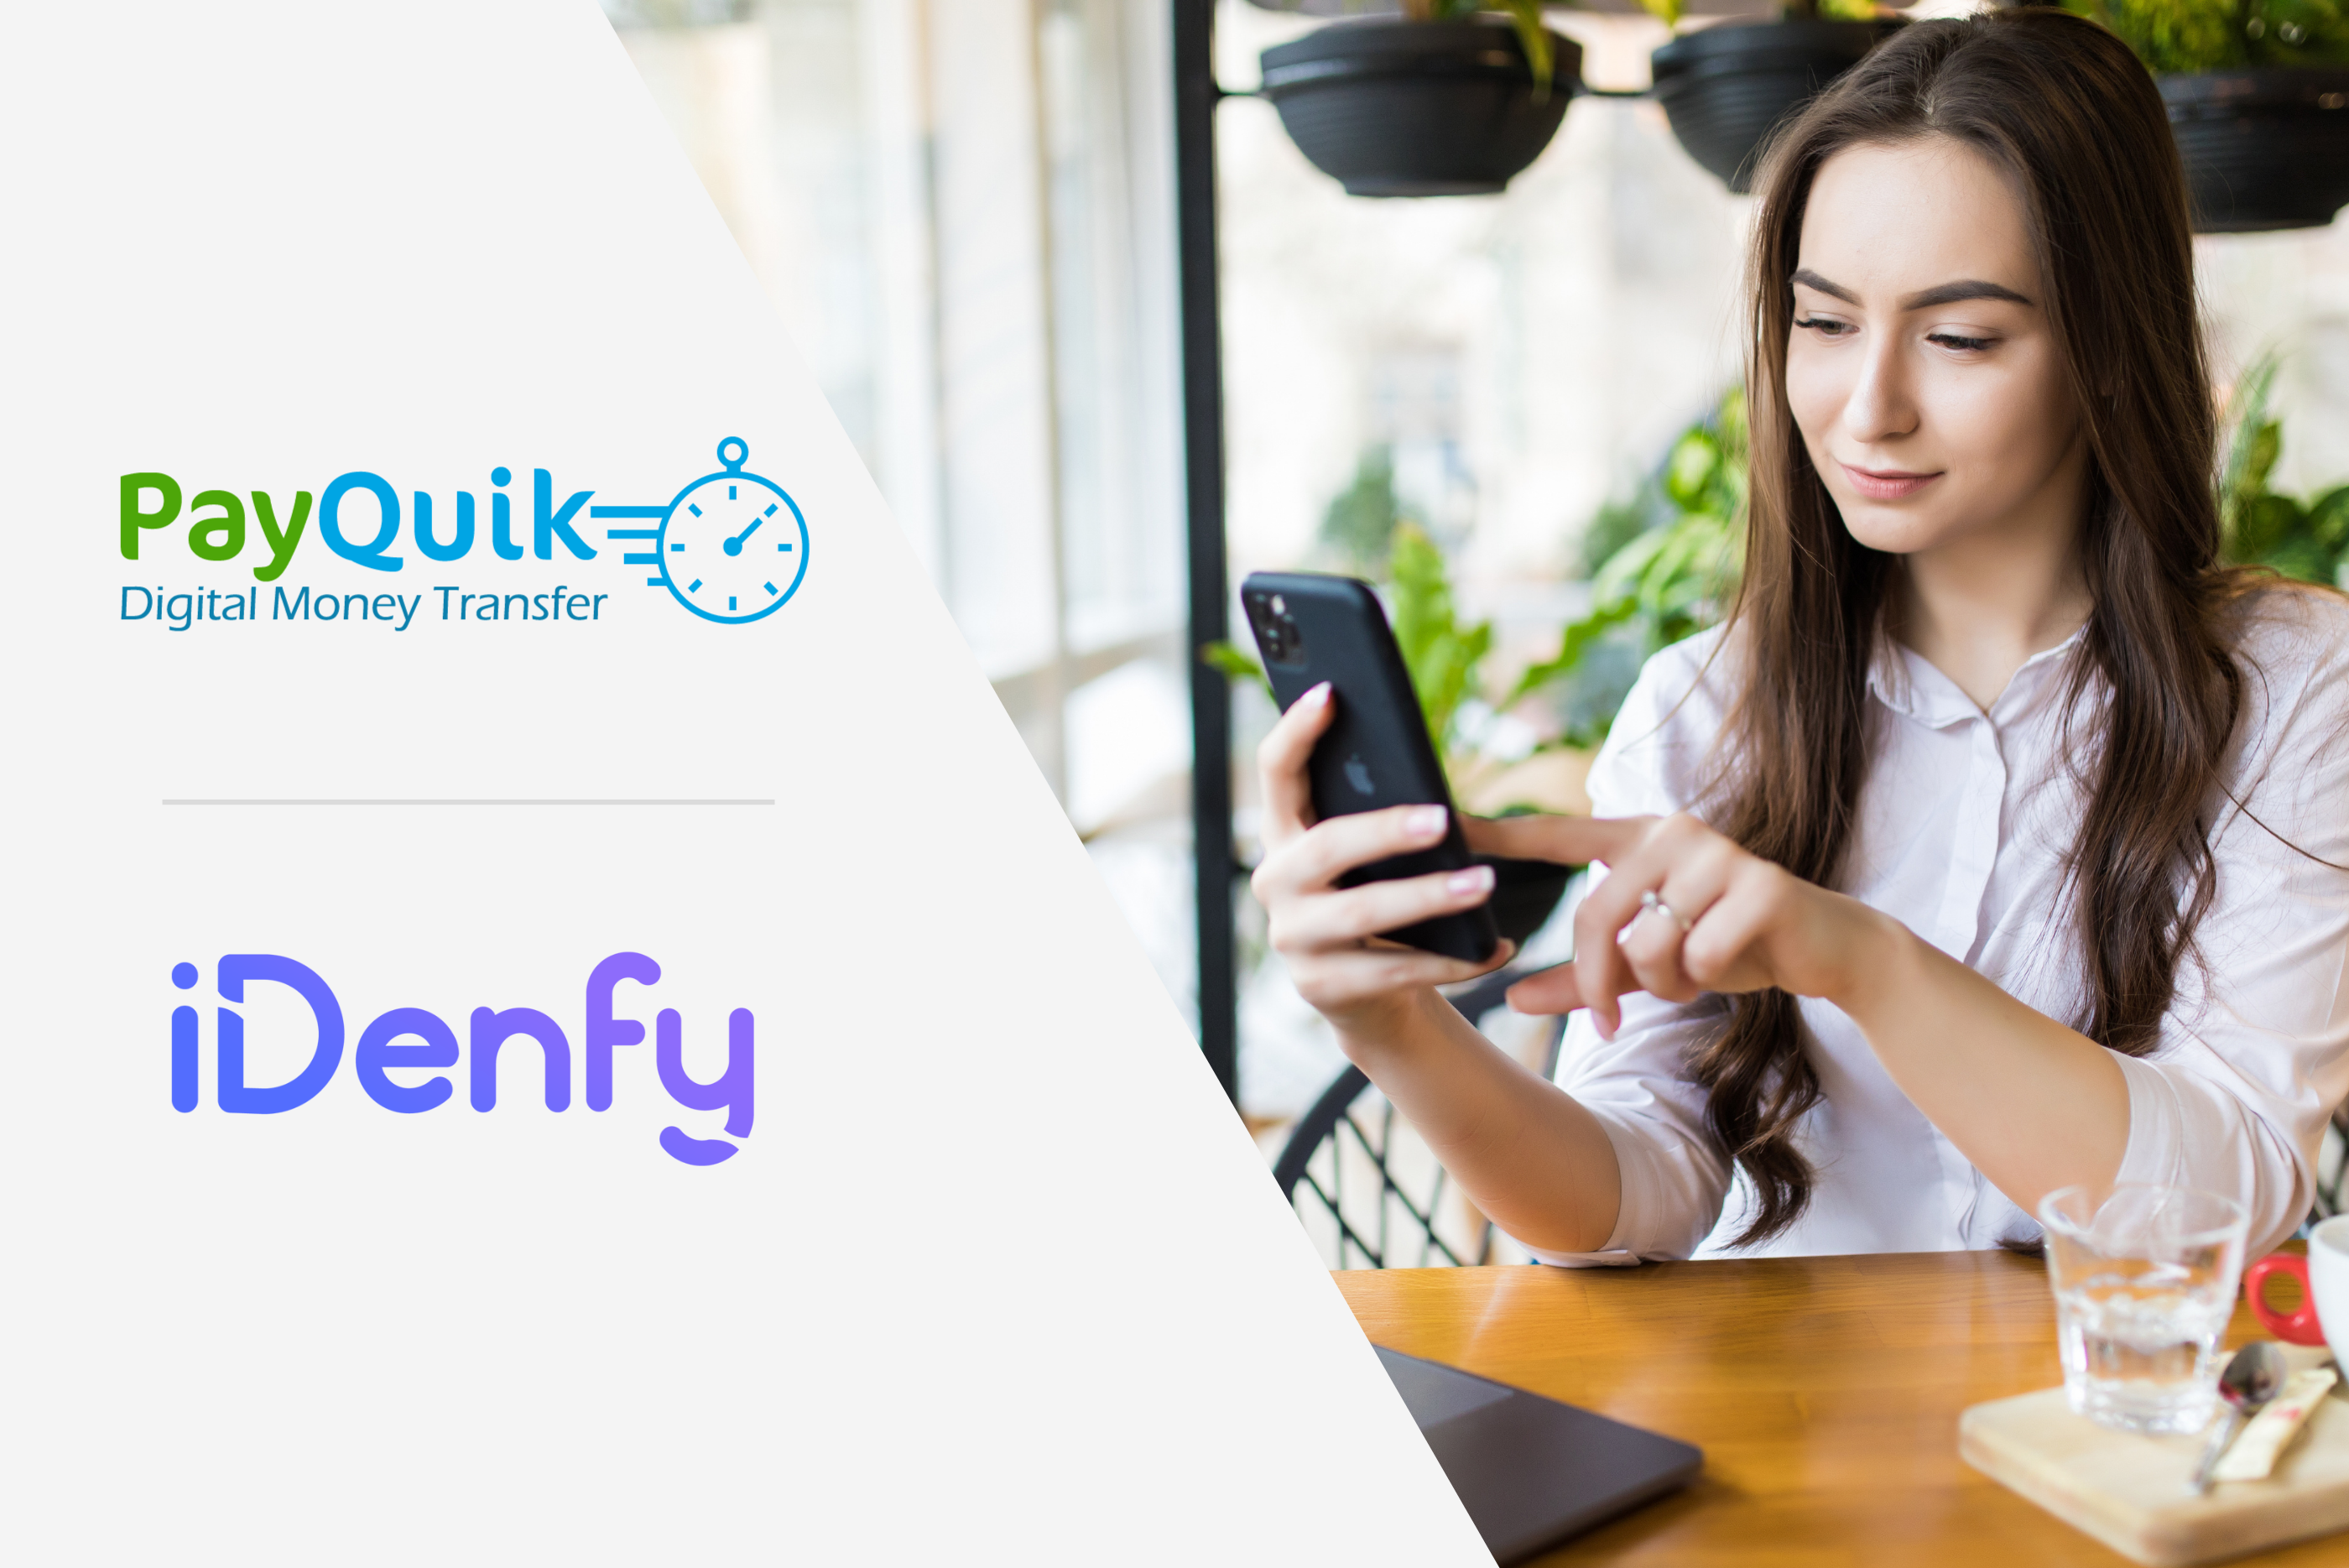 PayQuick and iDenfy partnership announcement